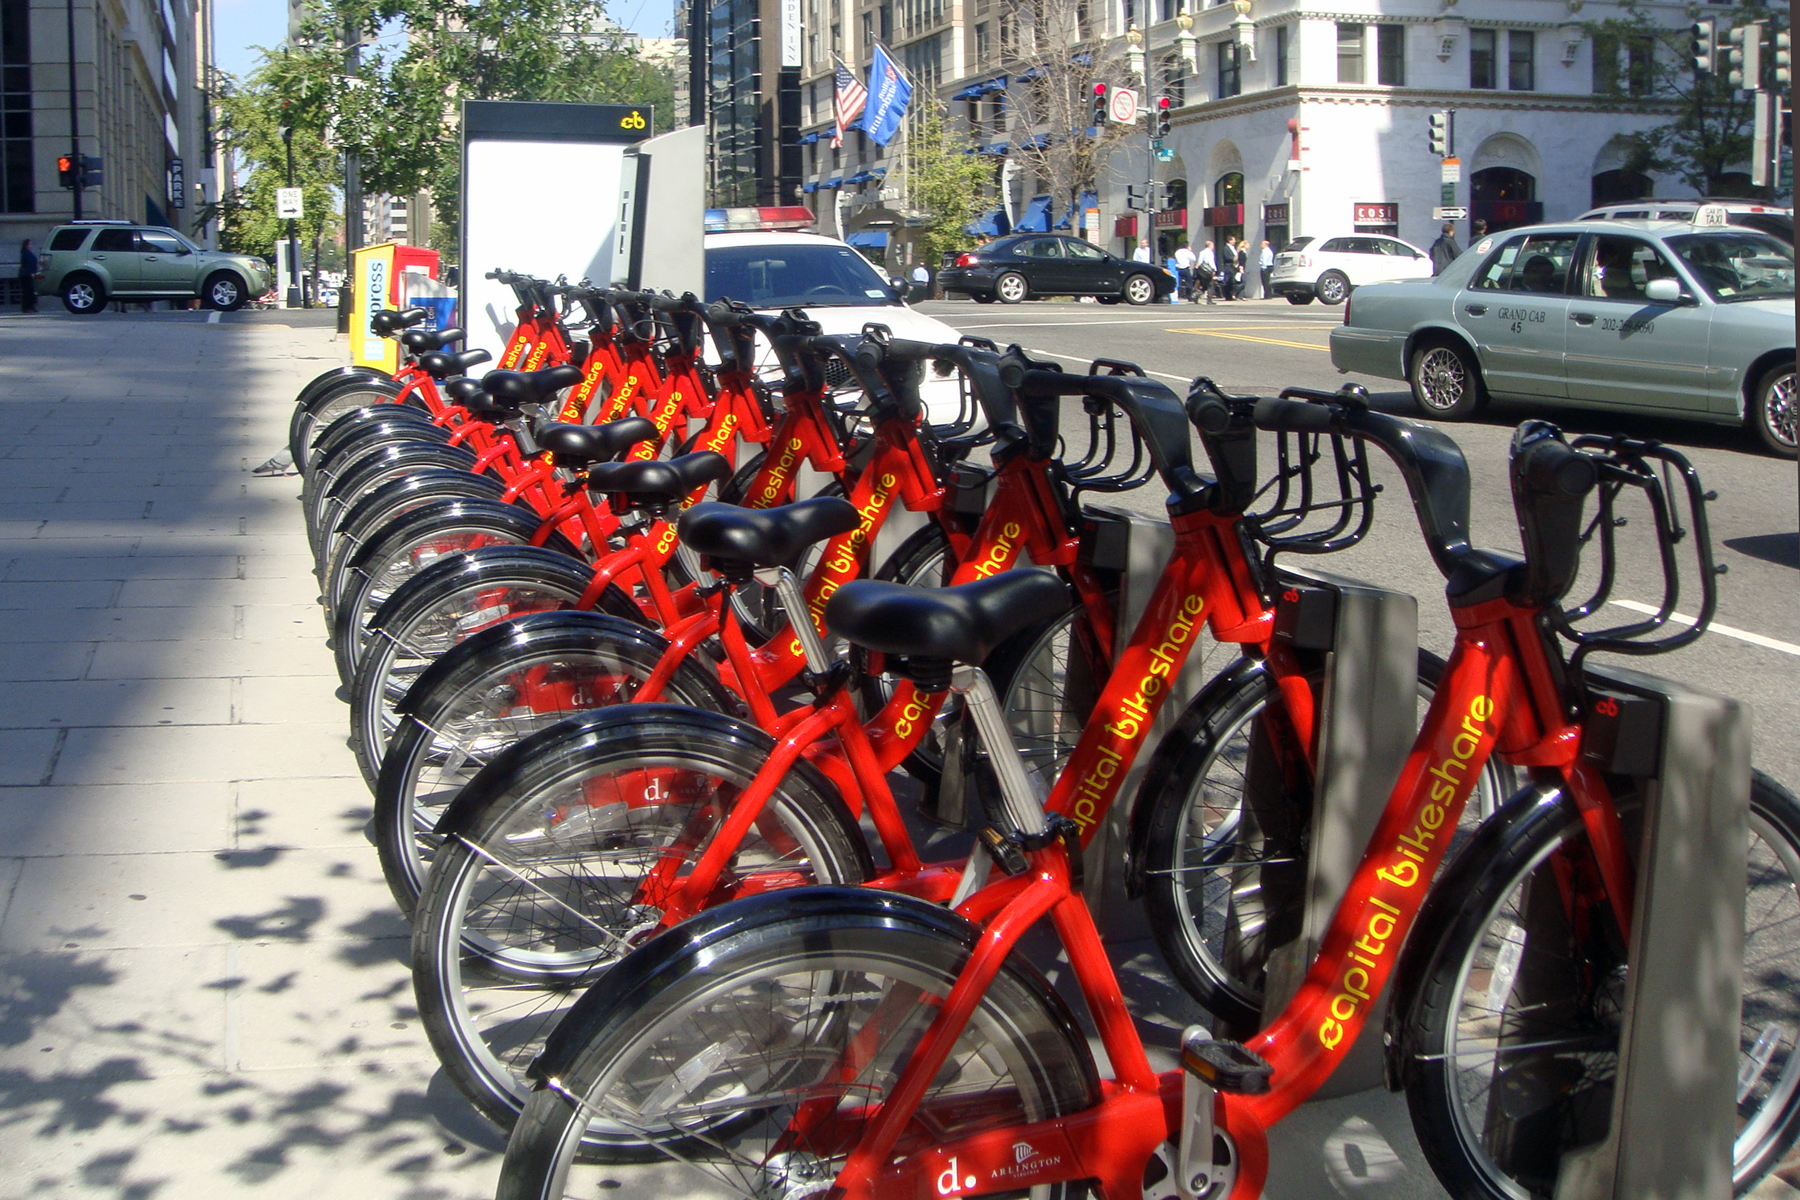 Capital_Bikeshare_DC_2010_10_544.JPG